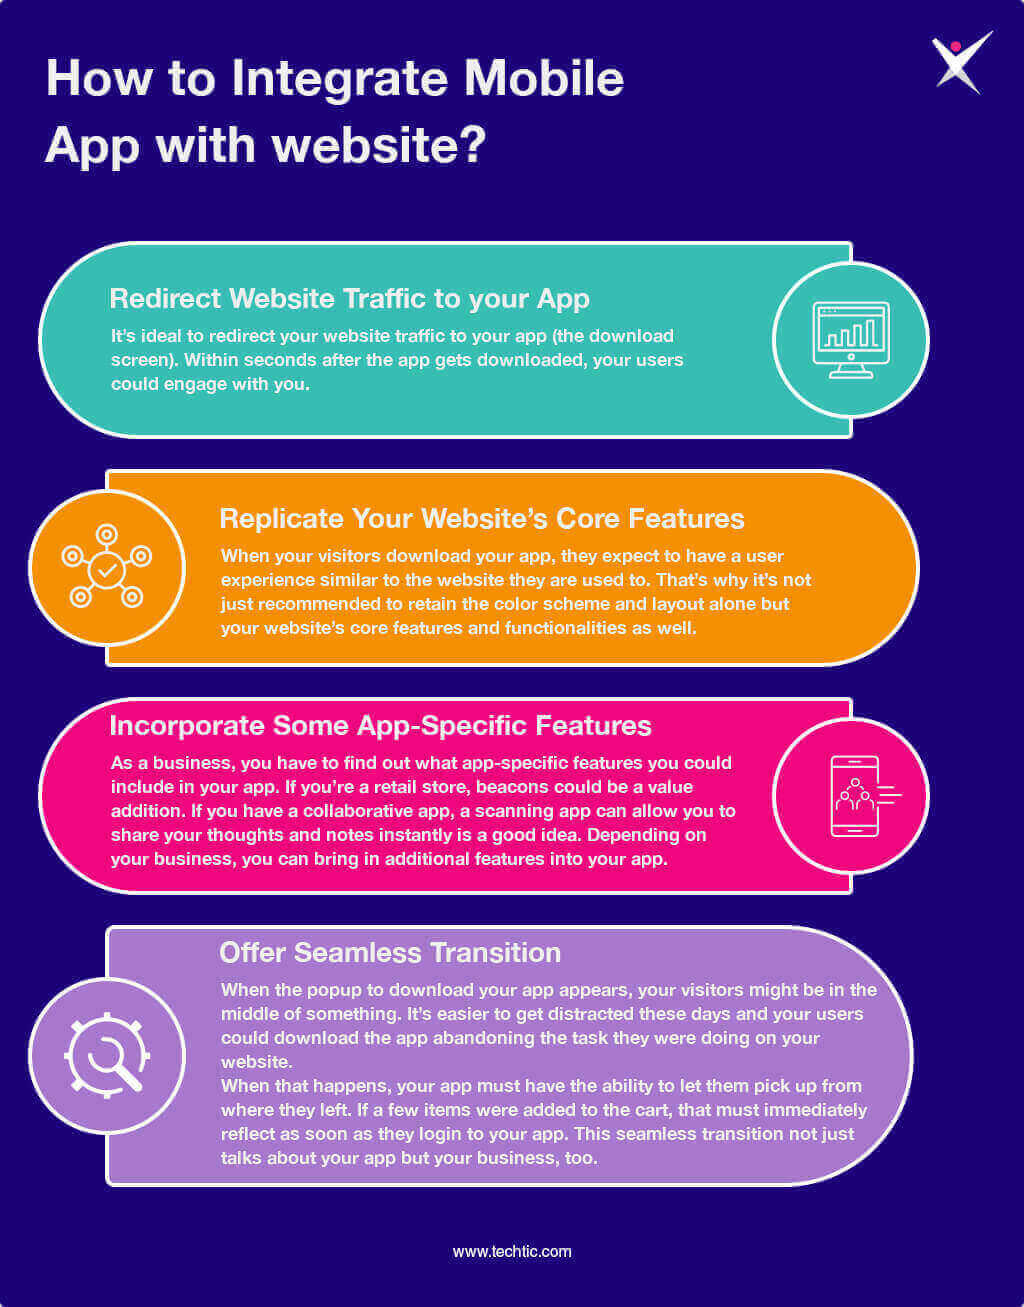 How to Integrate your Mobile App with Website chart